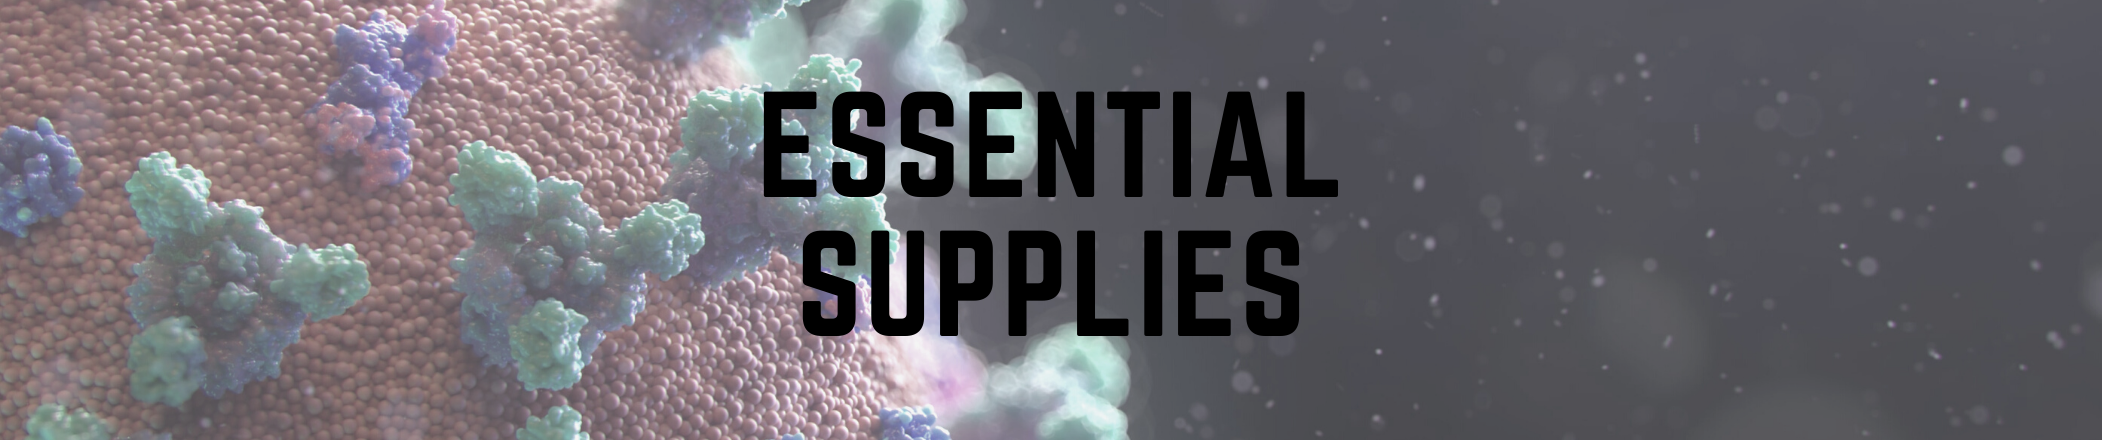 essential supplies text with an image background